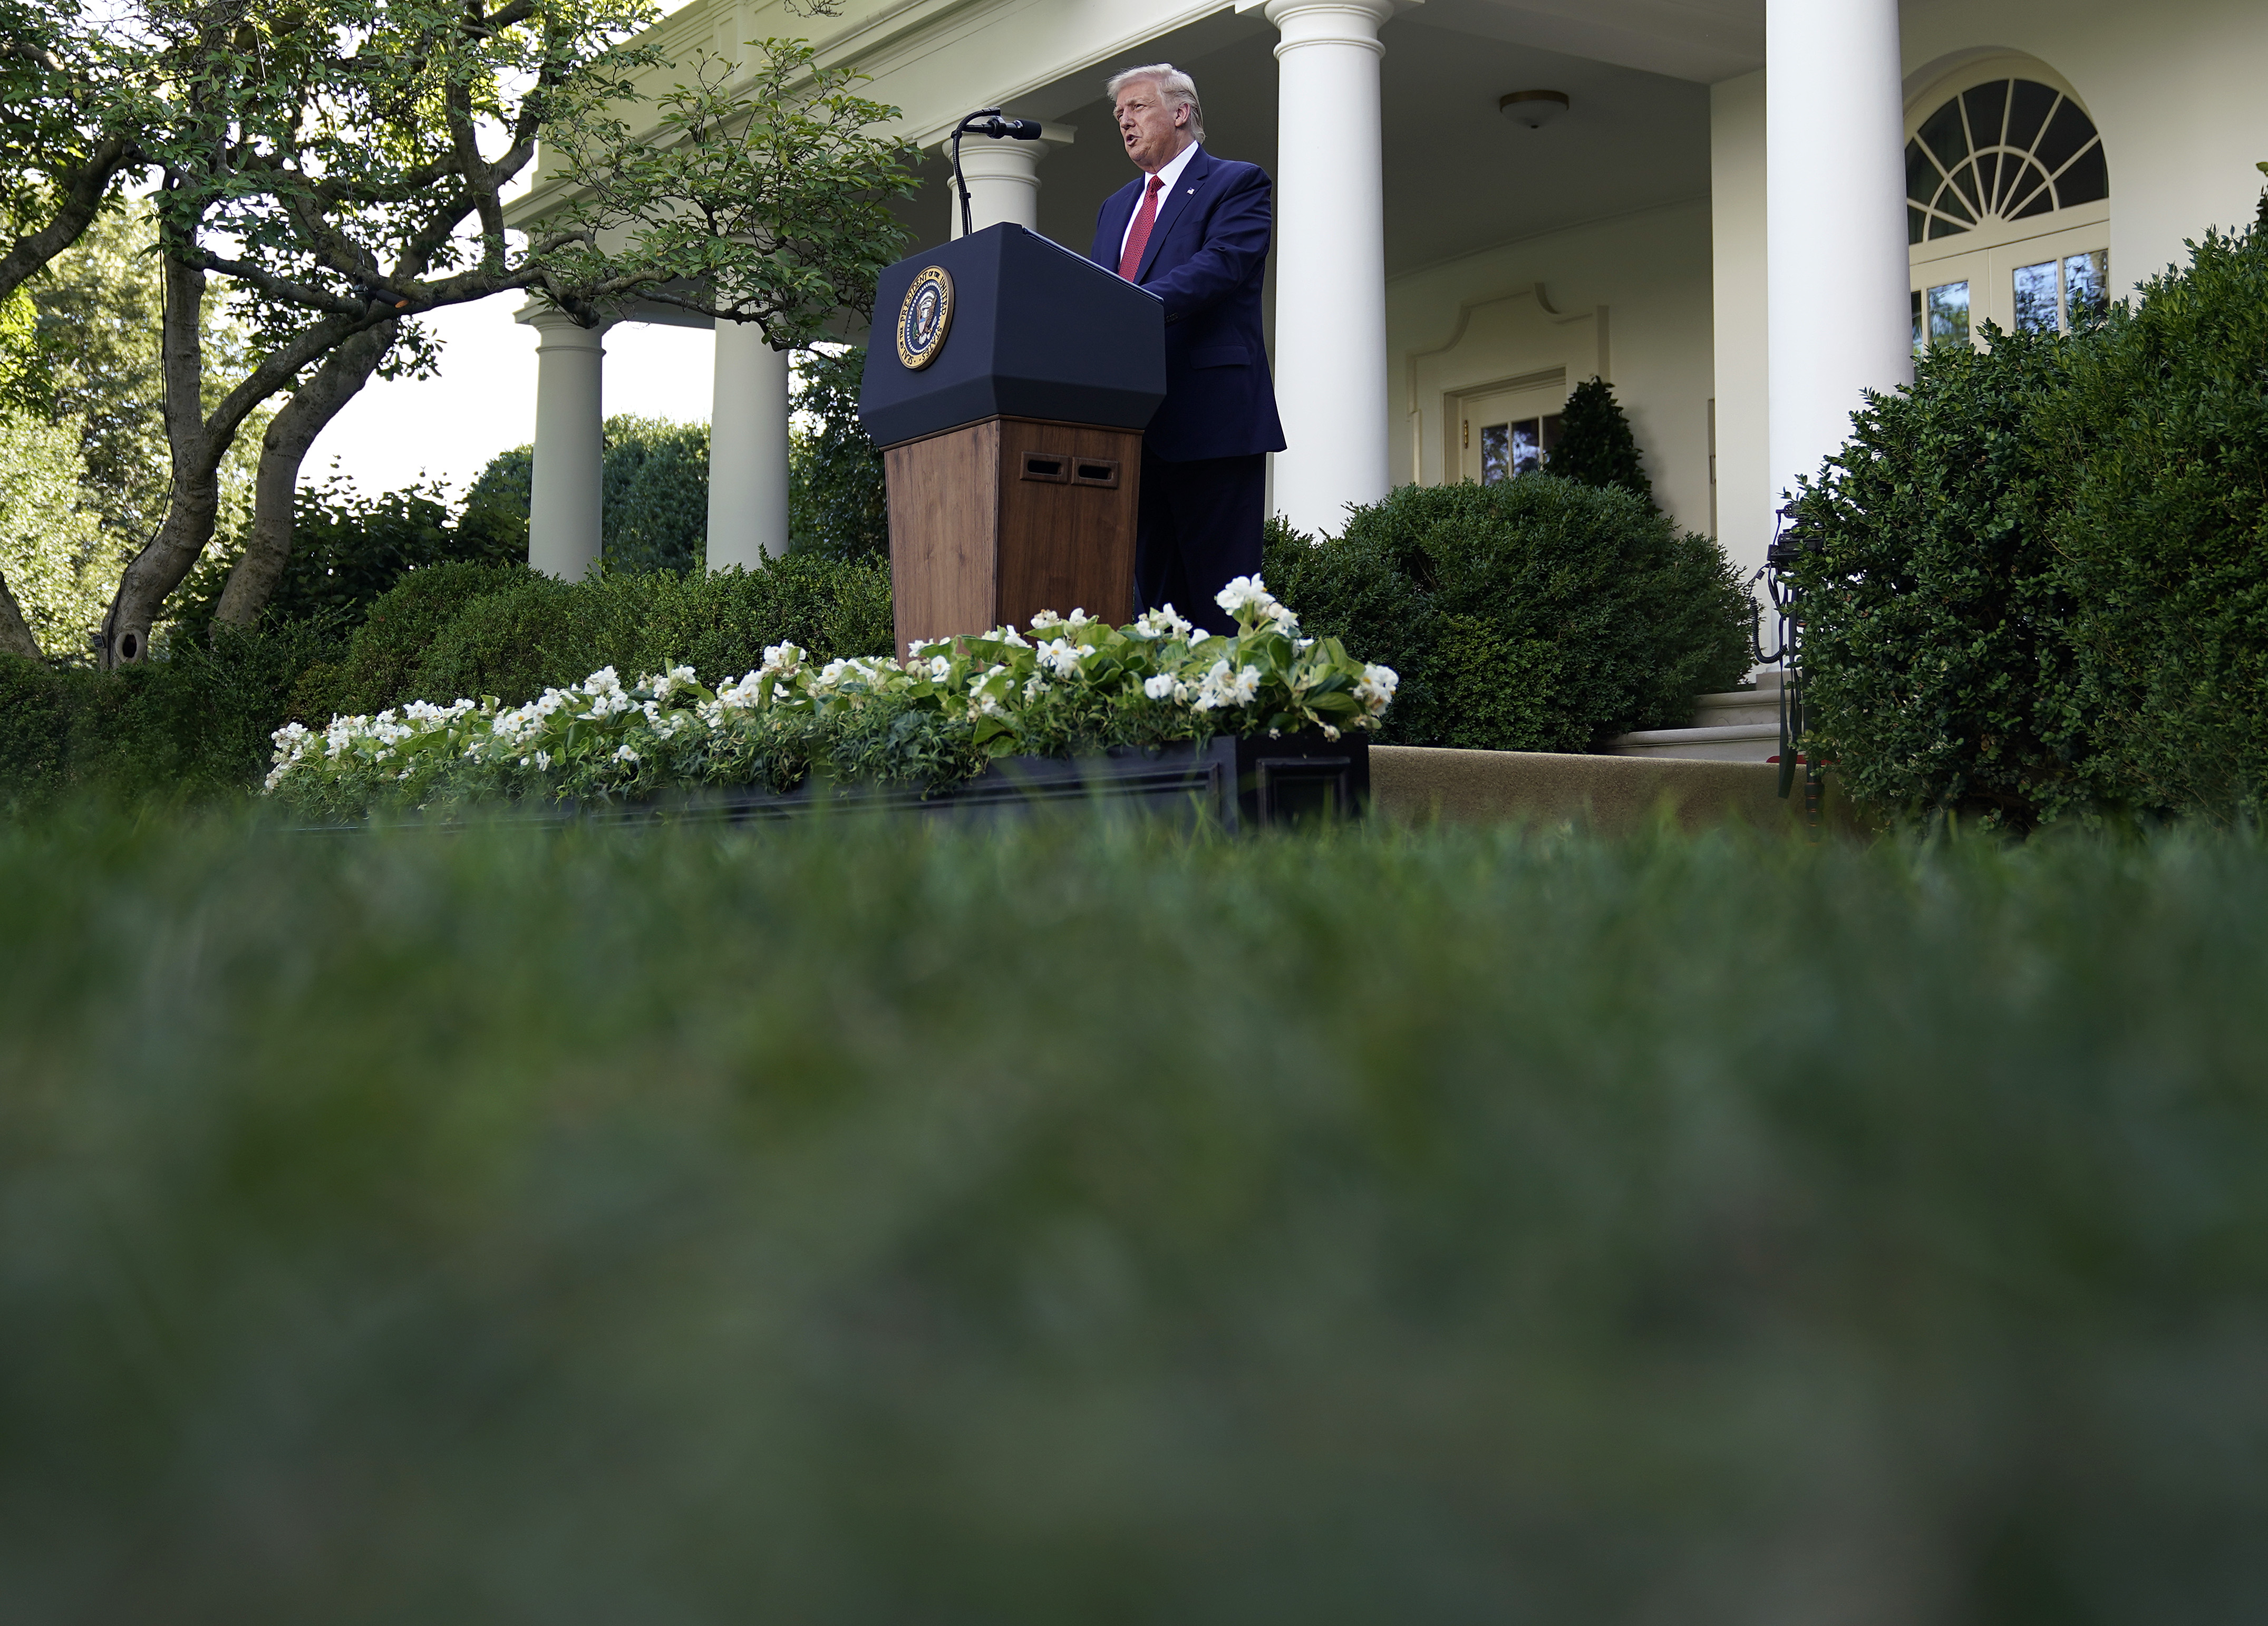 WASHINGTON, DC - JULY 14: U.S. President Donald Trump speaks to the media in the Rose Garden at the White House on July 14, 2020 in Washington, DC. President Trump spoke on several topics including Democratic presidential candidate Joe Biden, the stock market and relations with China as the coronavirus continues to spread in the U.S., with nearly 3.4 million confirmed cases. (Photo by Drew Angerer/Getty Images)